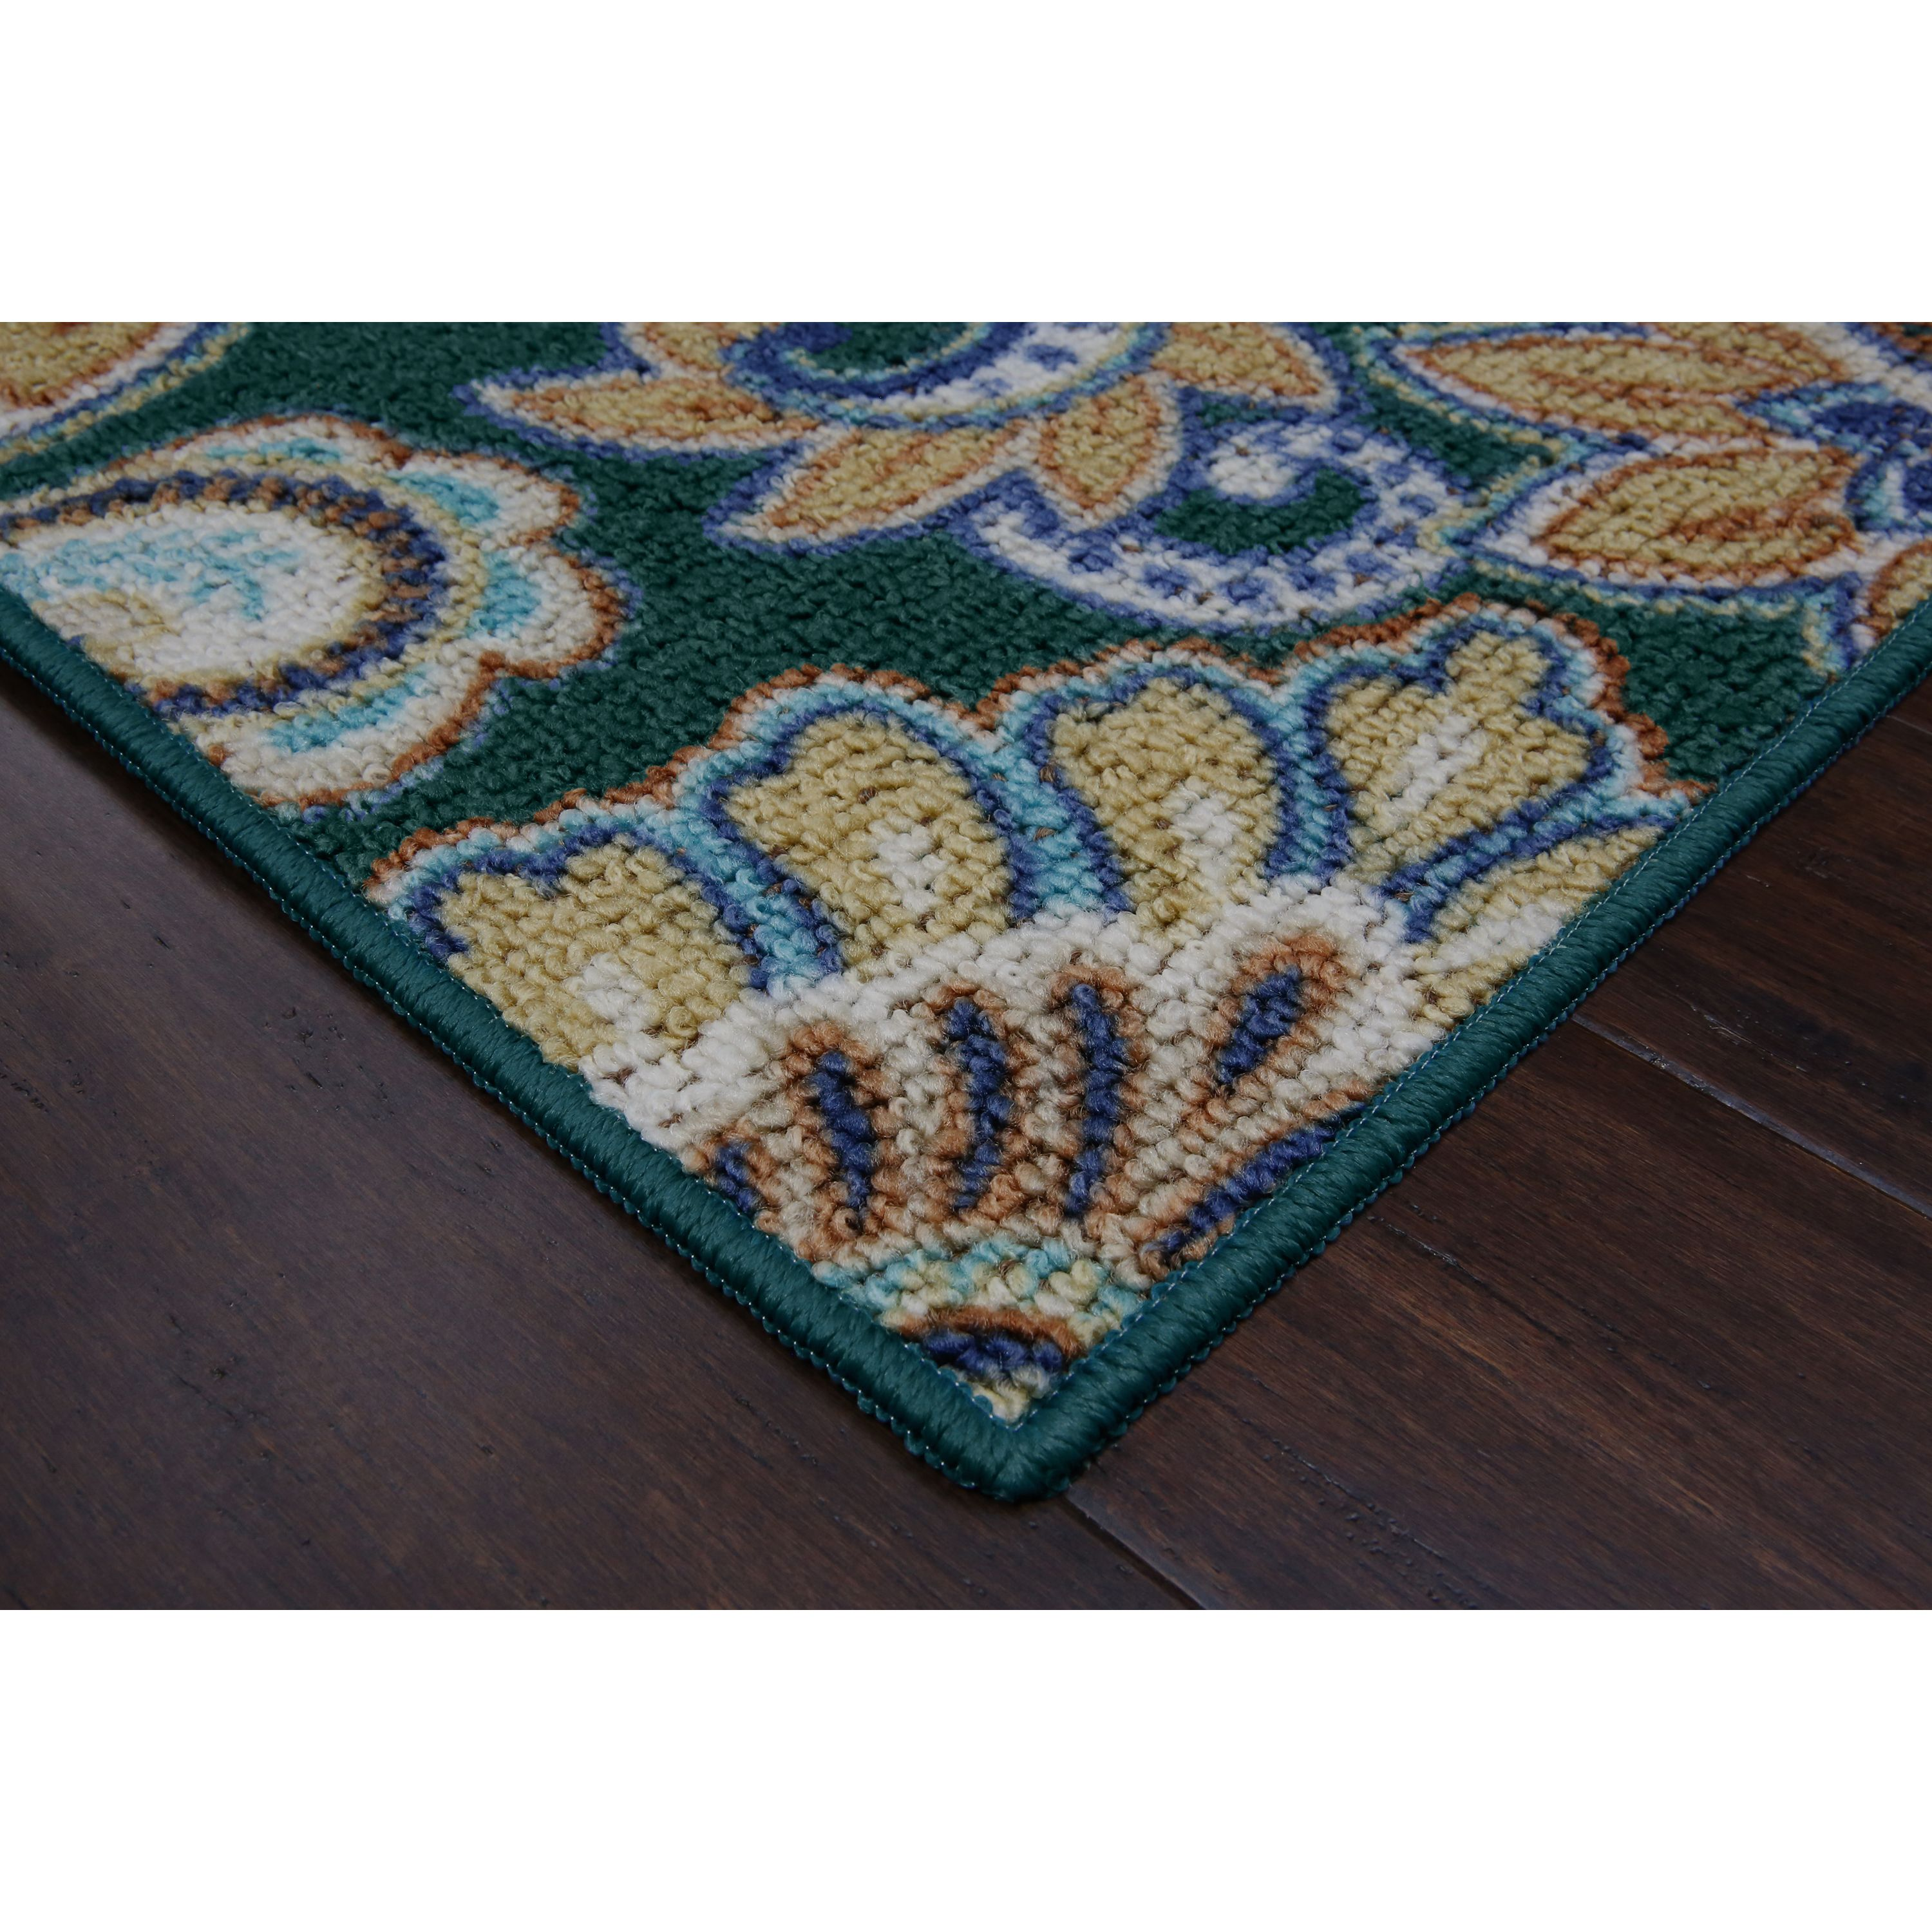 Better Homes and Gardens Brown Paisley Berber Printed Area Rugs or